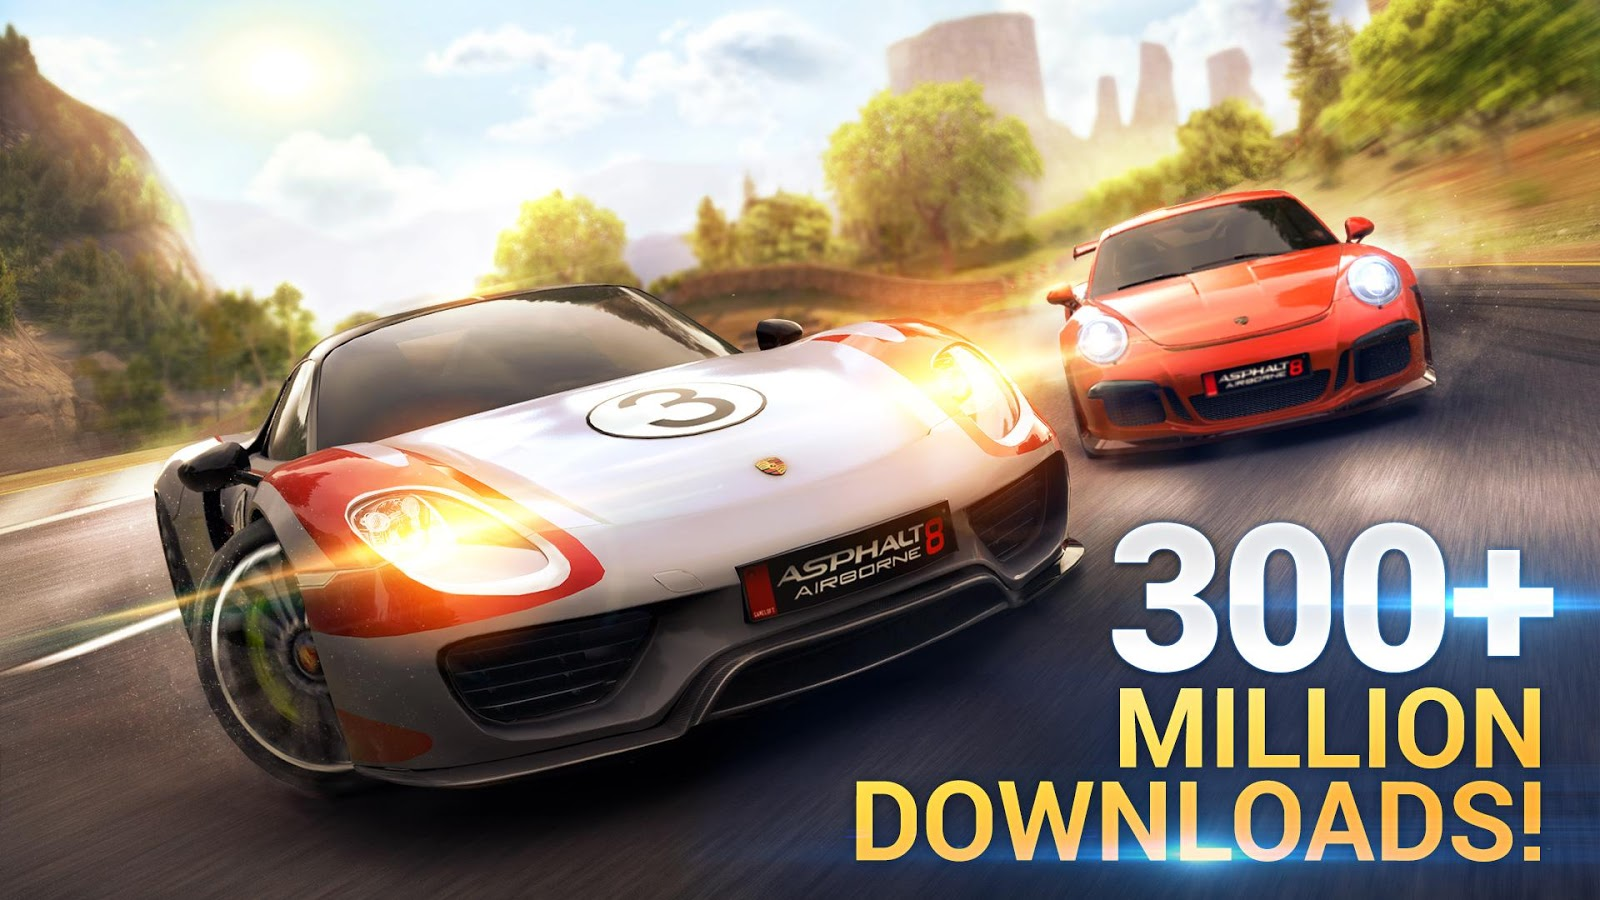 Asphalt 8: Airborne Screenshot 6